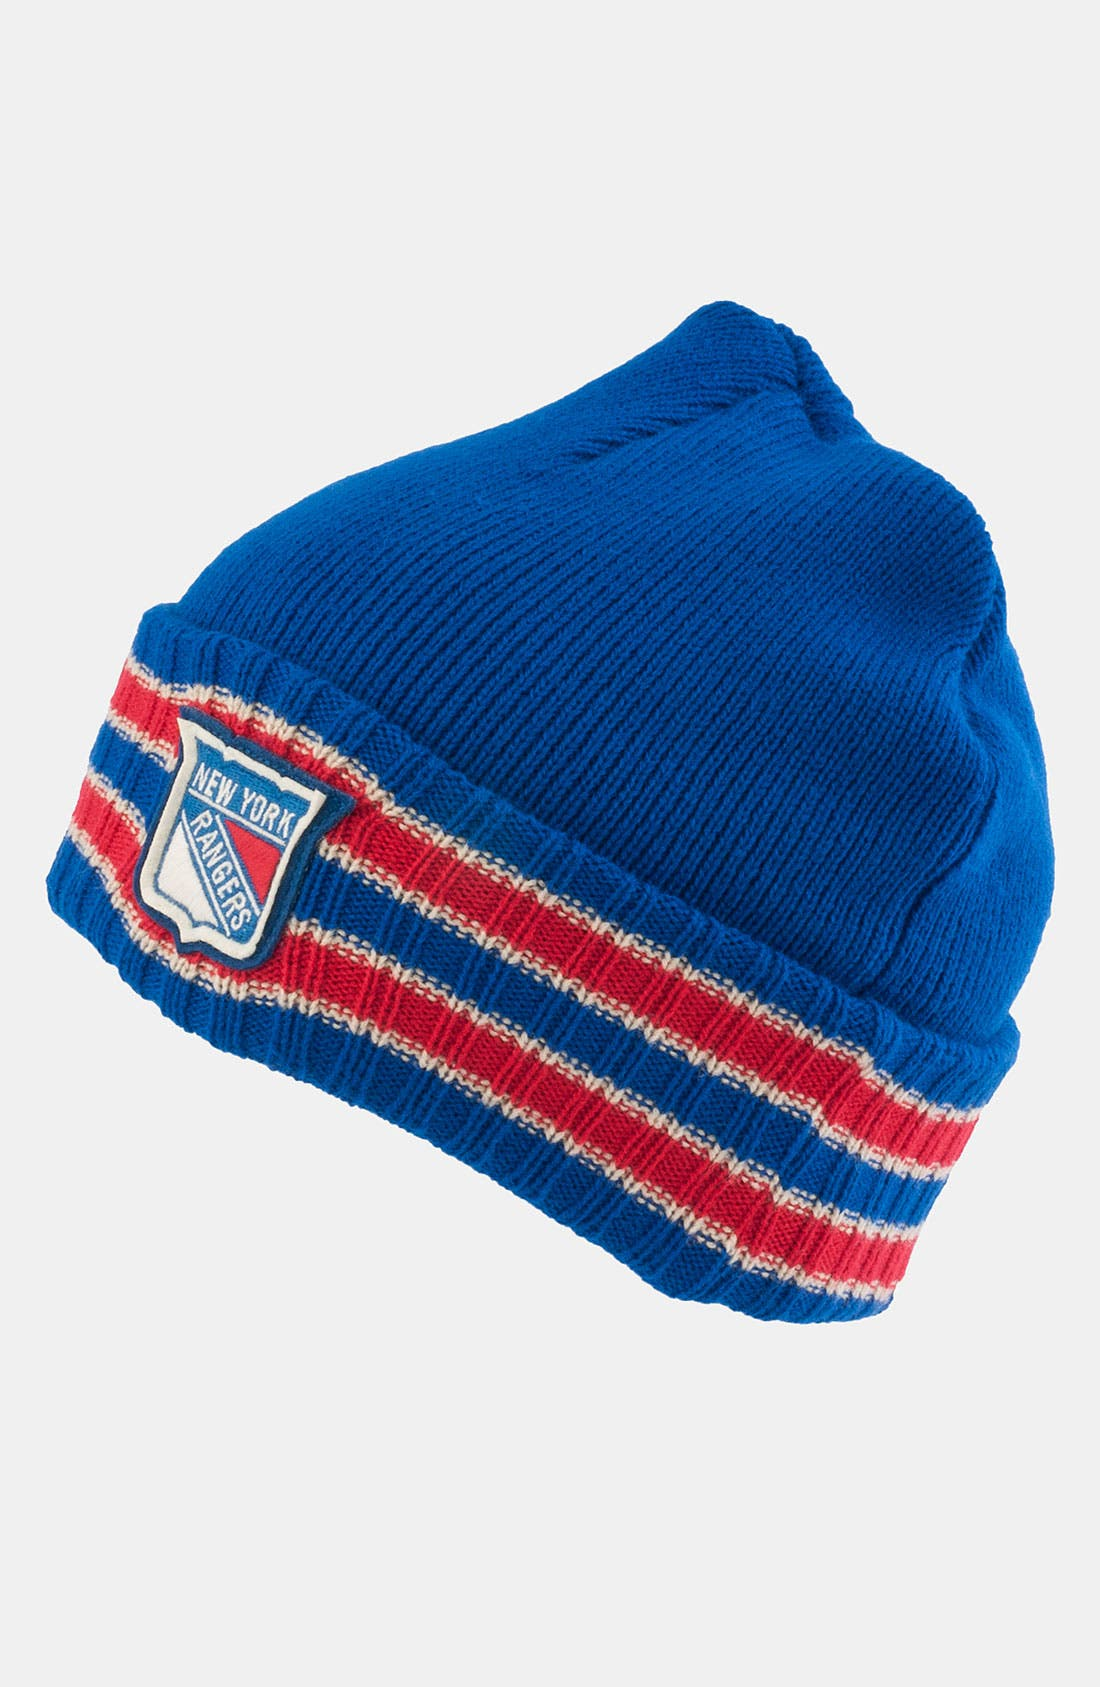 Main Image - American Needle 'New York Rangers - Slash' Knit Hat